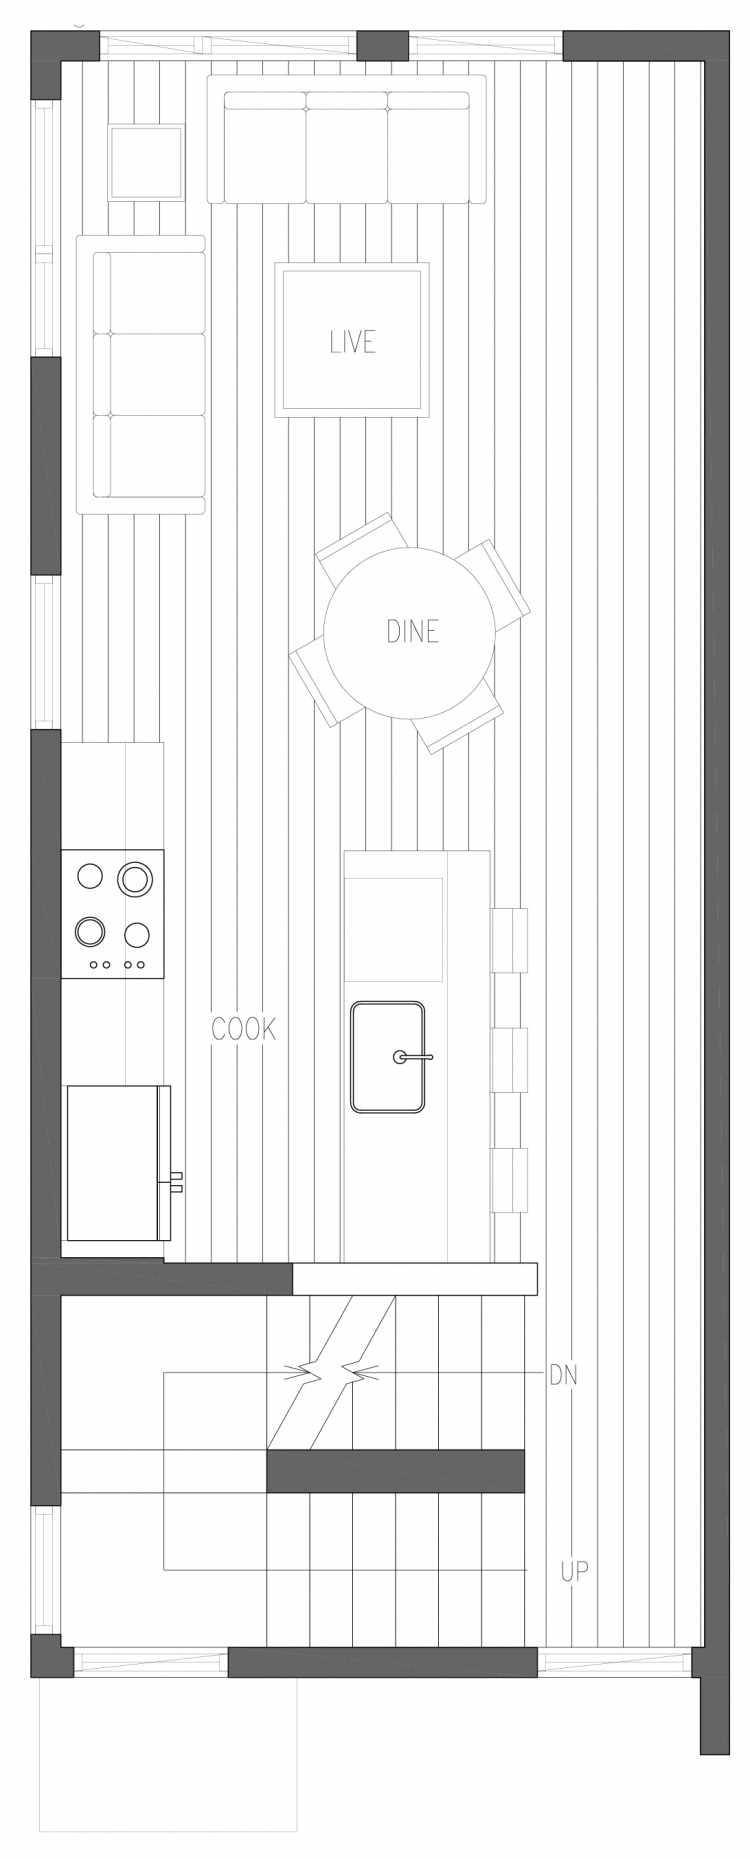 Second Floor Plan of 6411 14th Ave NW, One of the Oleana Townhomes in Ballard by Isola Homes